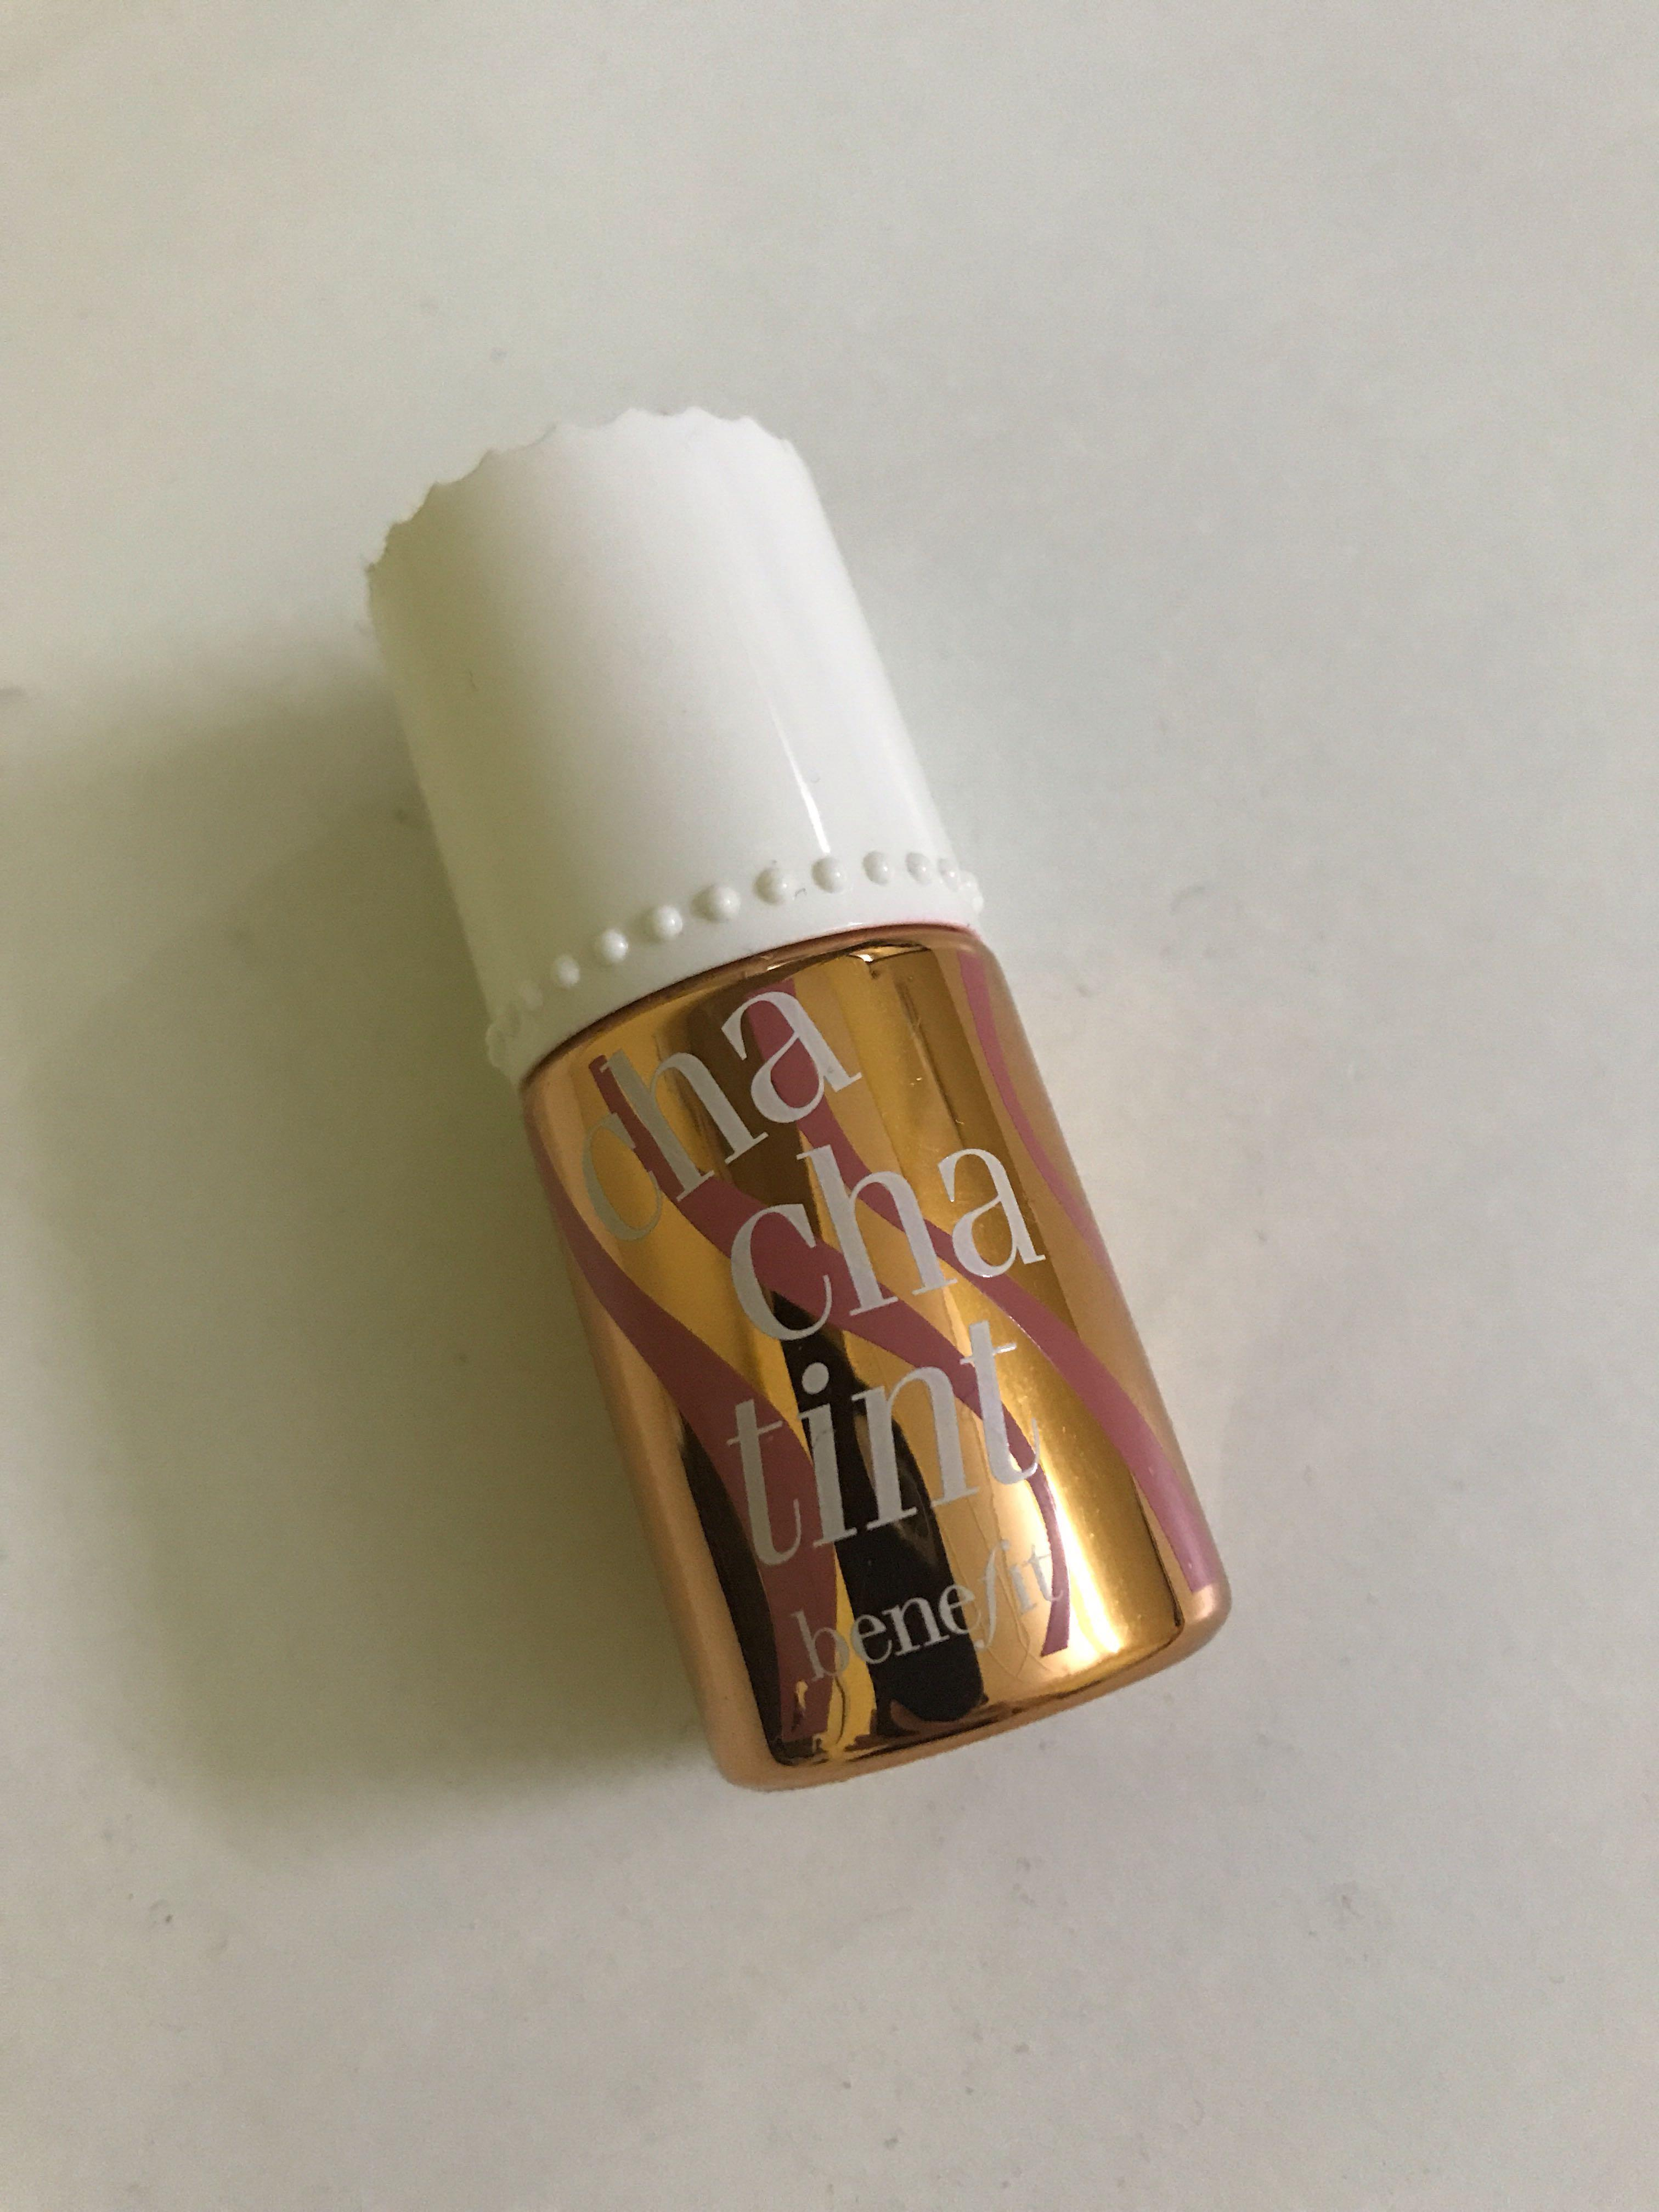 Benefit Cha Cha Tint ( price reduced )